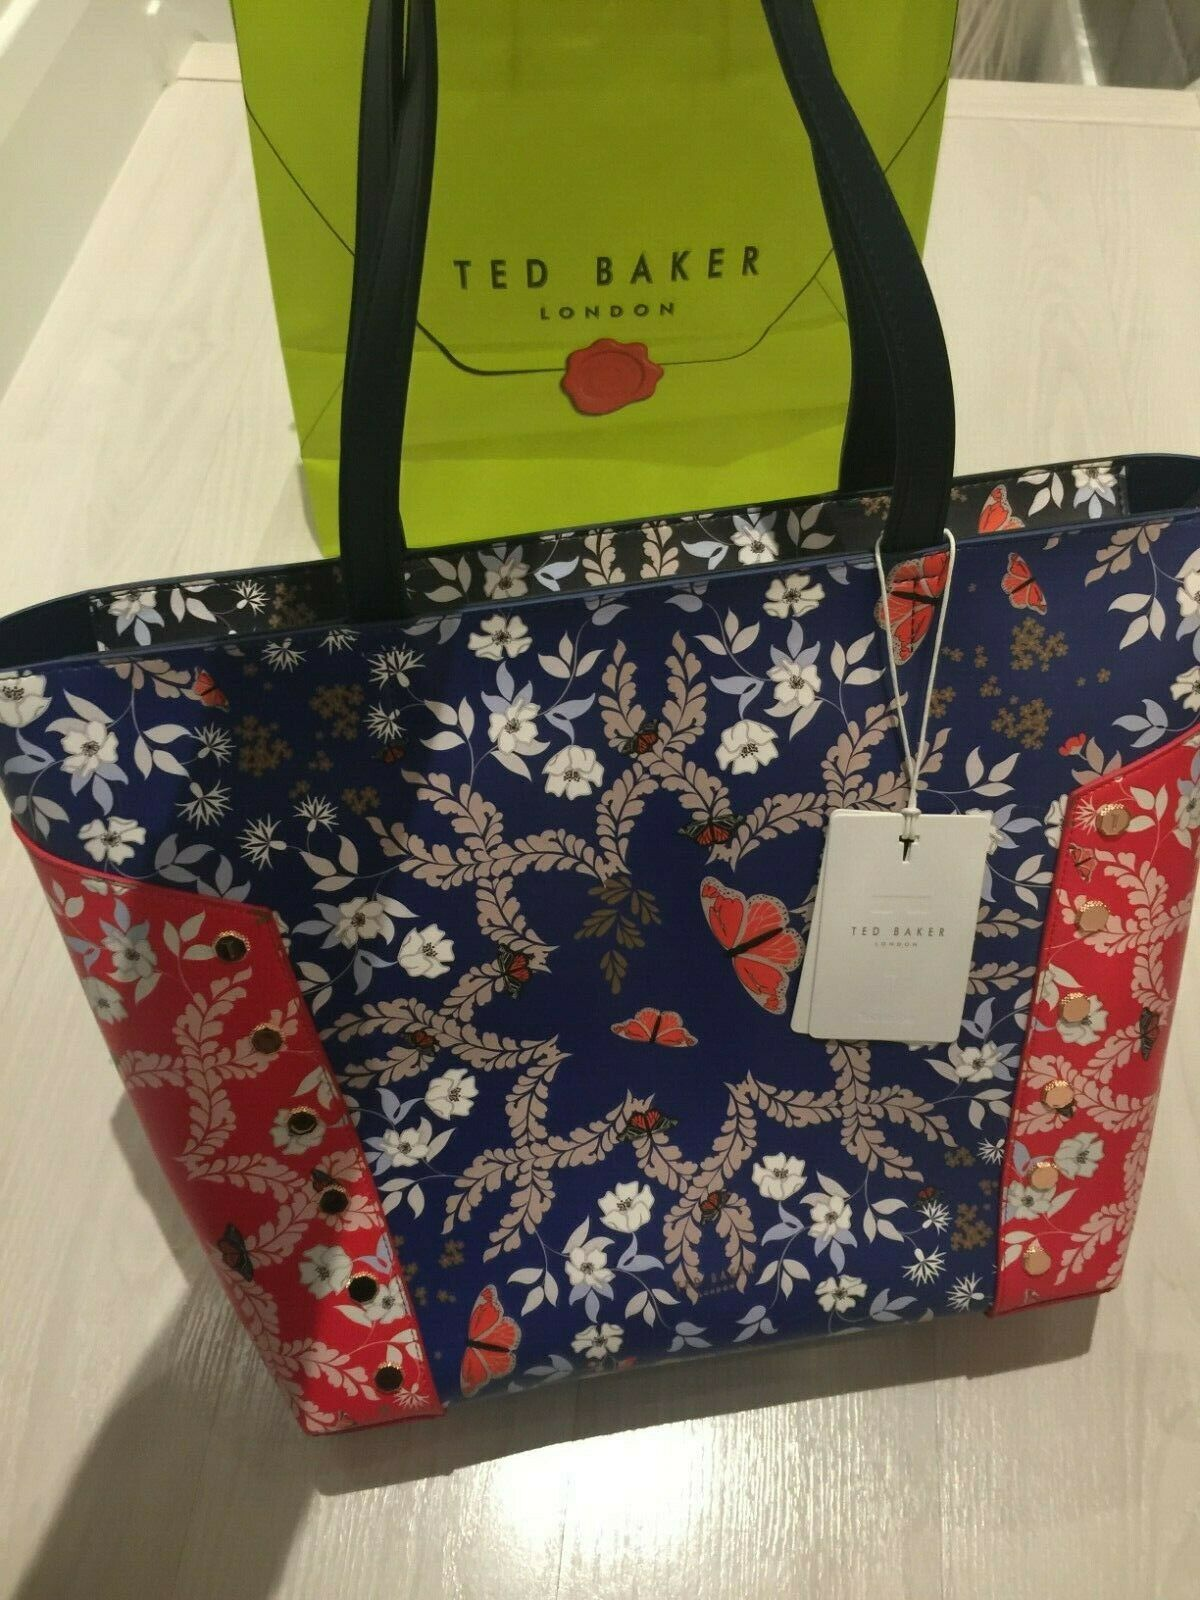 TED BAKER Kyoto Gardens Zip Top Large Tote Bag RRP : Perfect Gift : New